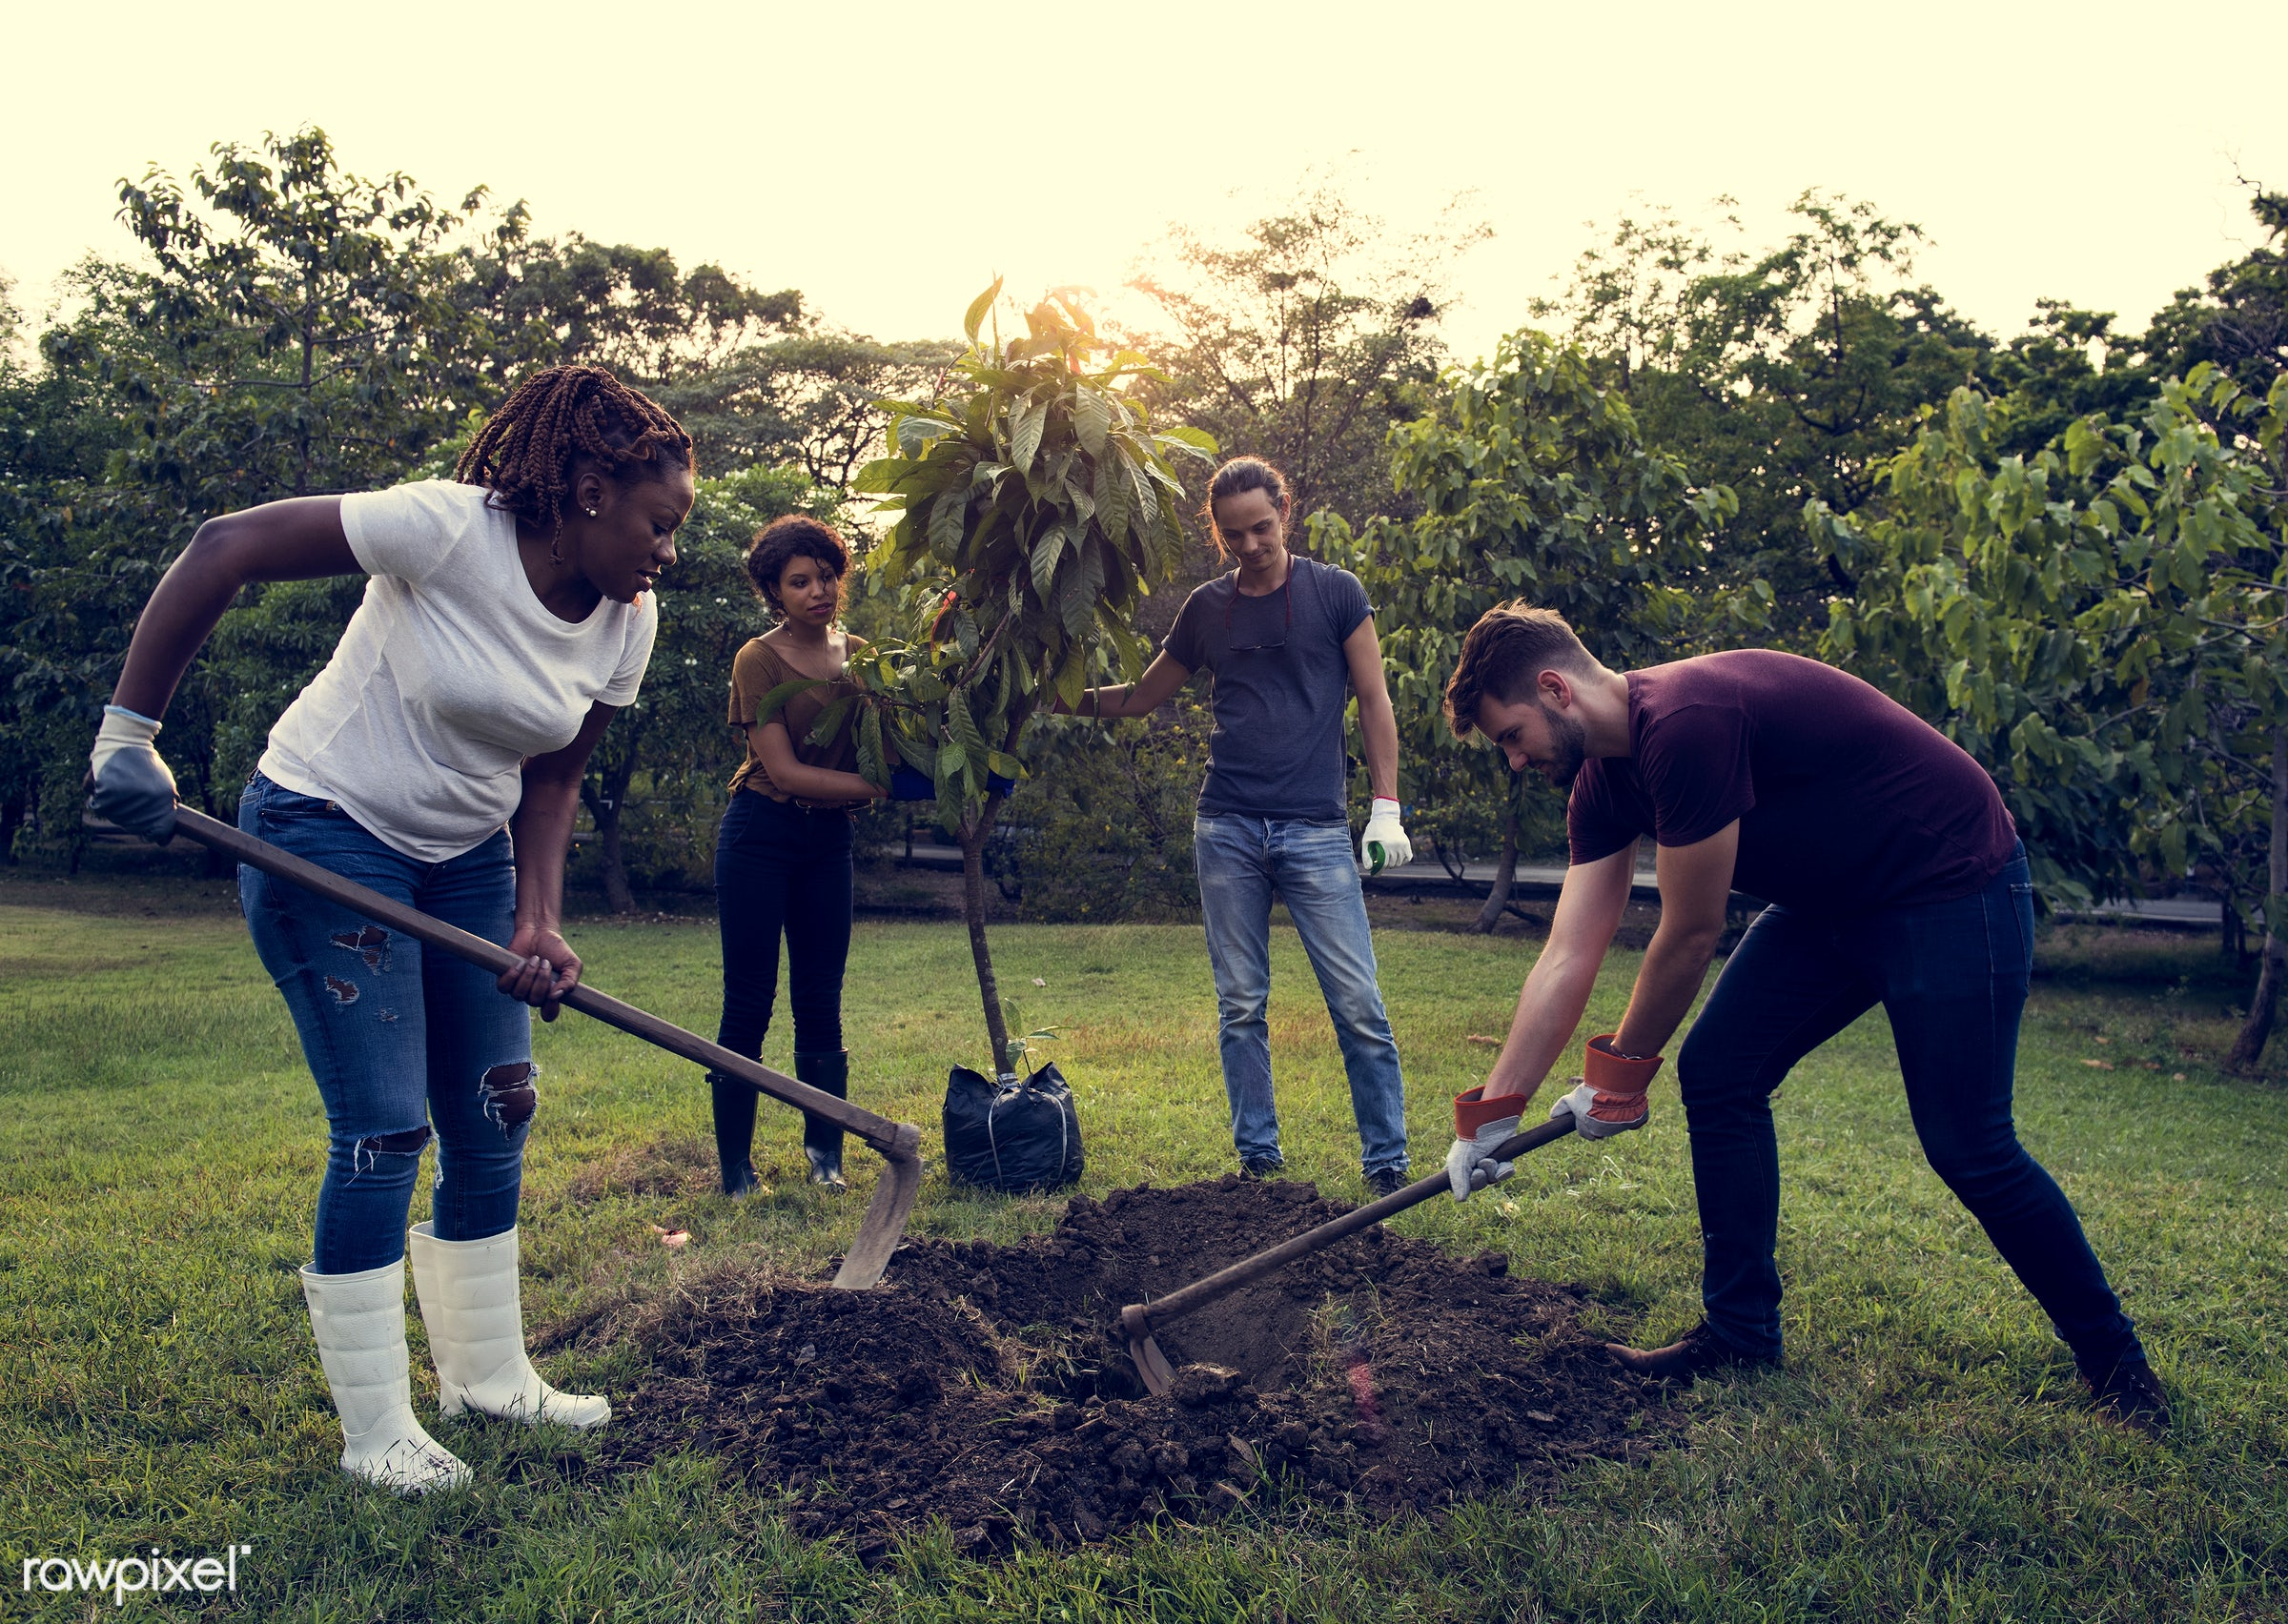 person, save, community service, people, together, help, tree, nature, woman, friendship, responsibility, support, global,...